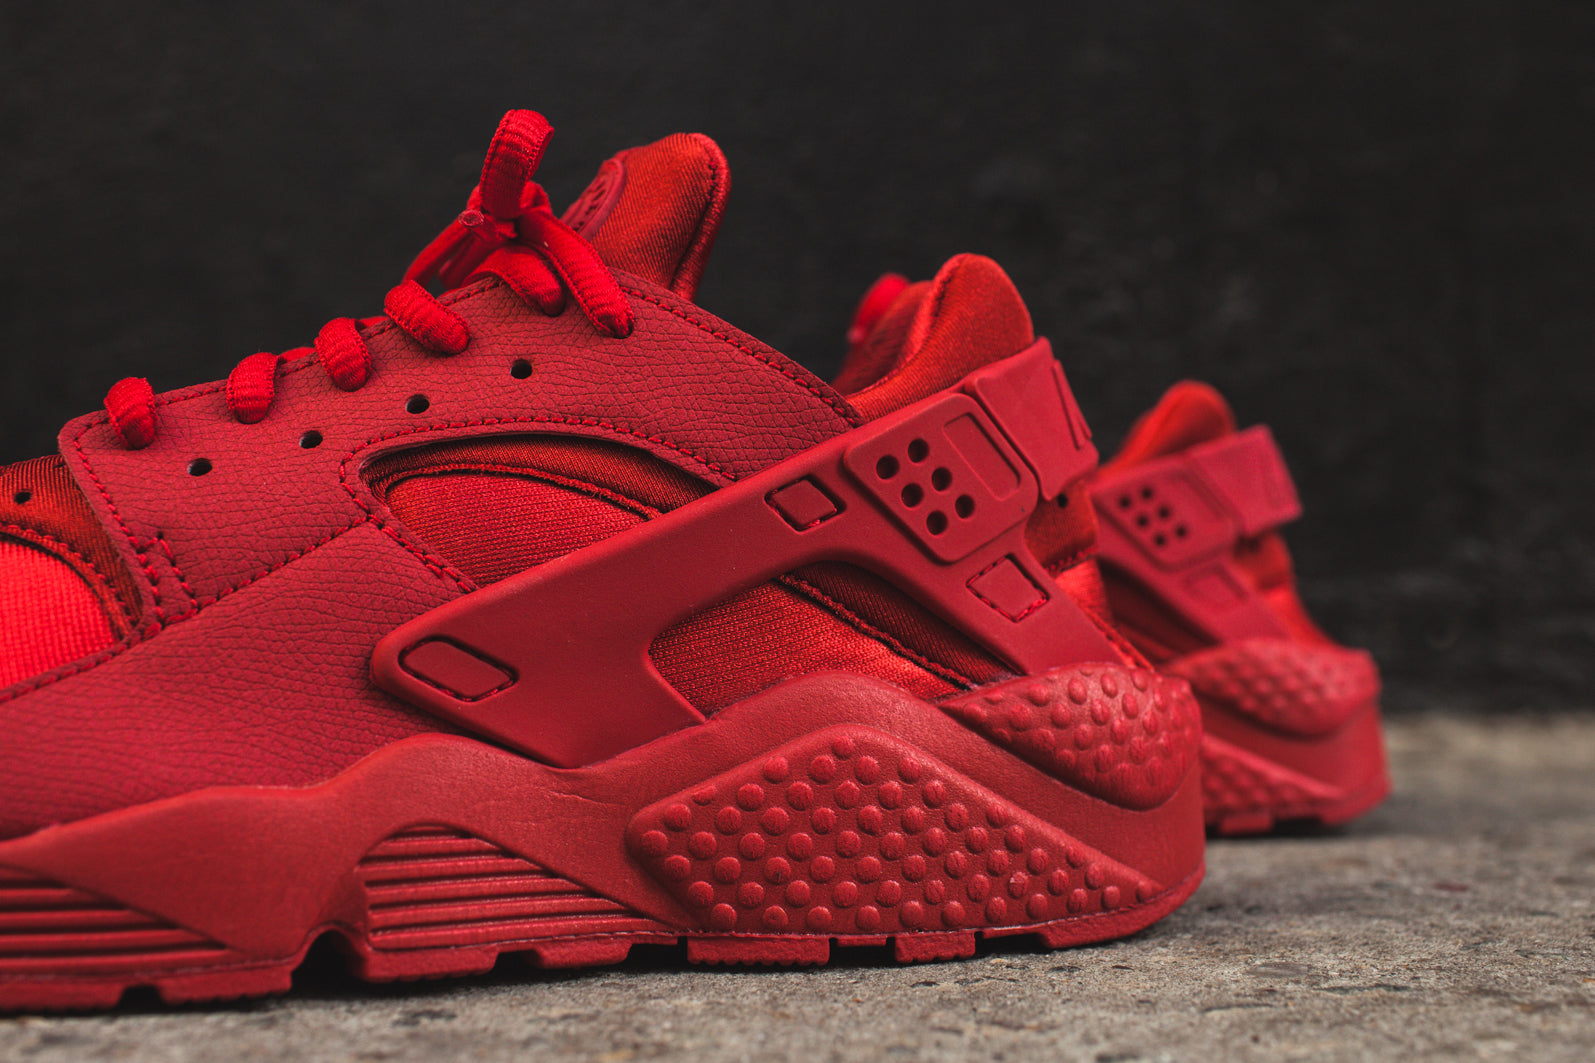 2e14318ac951 Nike WMNS Air Huarache Run - Ruby Red. November 20